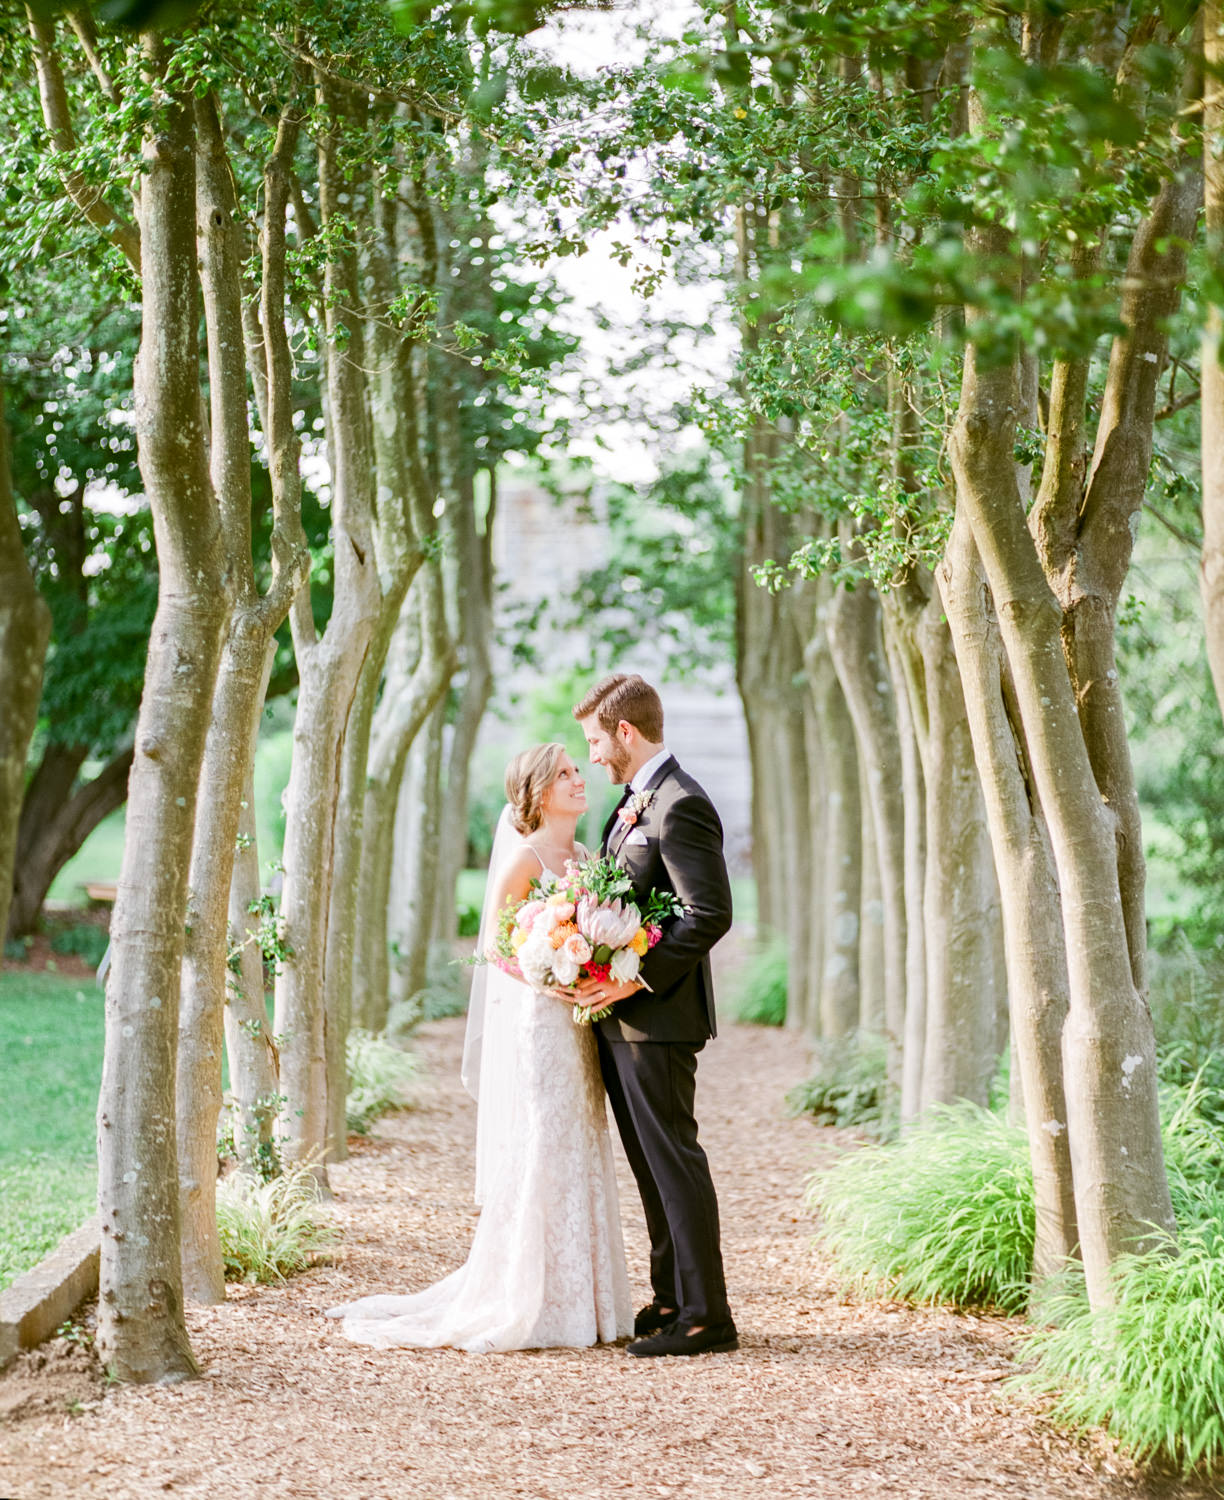 Yew Dell Wedding Photo of bride and groom holding bouquet in between unique trees, taken by Louisville Wedding Photographers Jeff & Michele